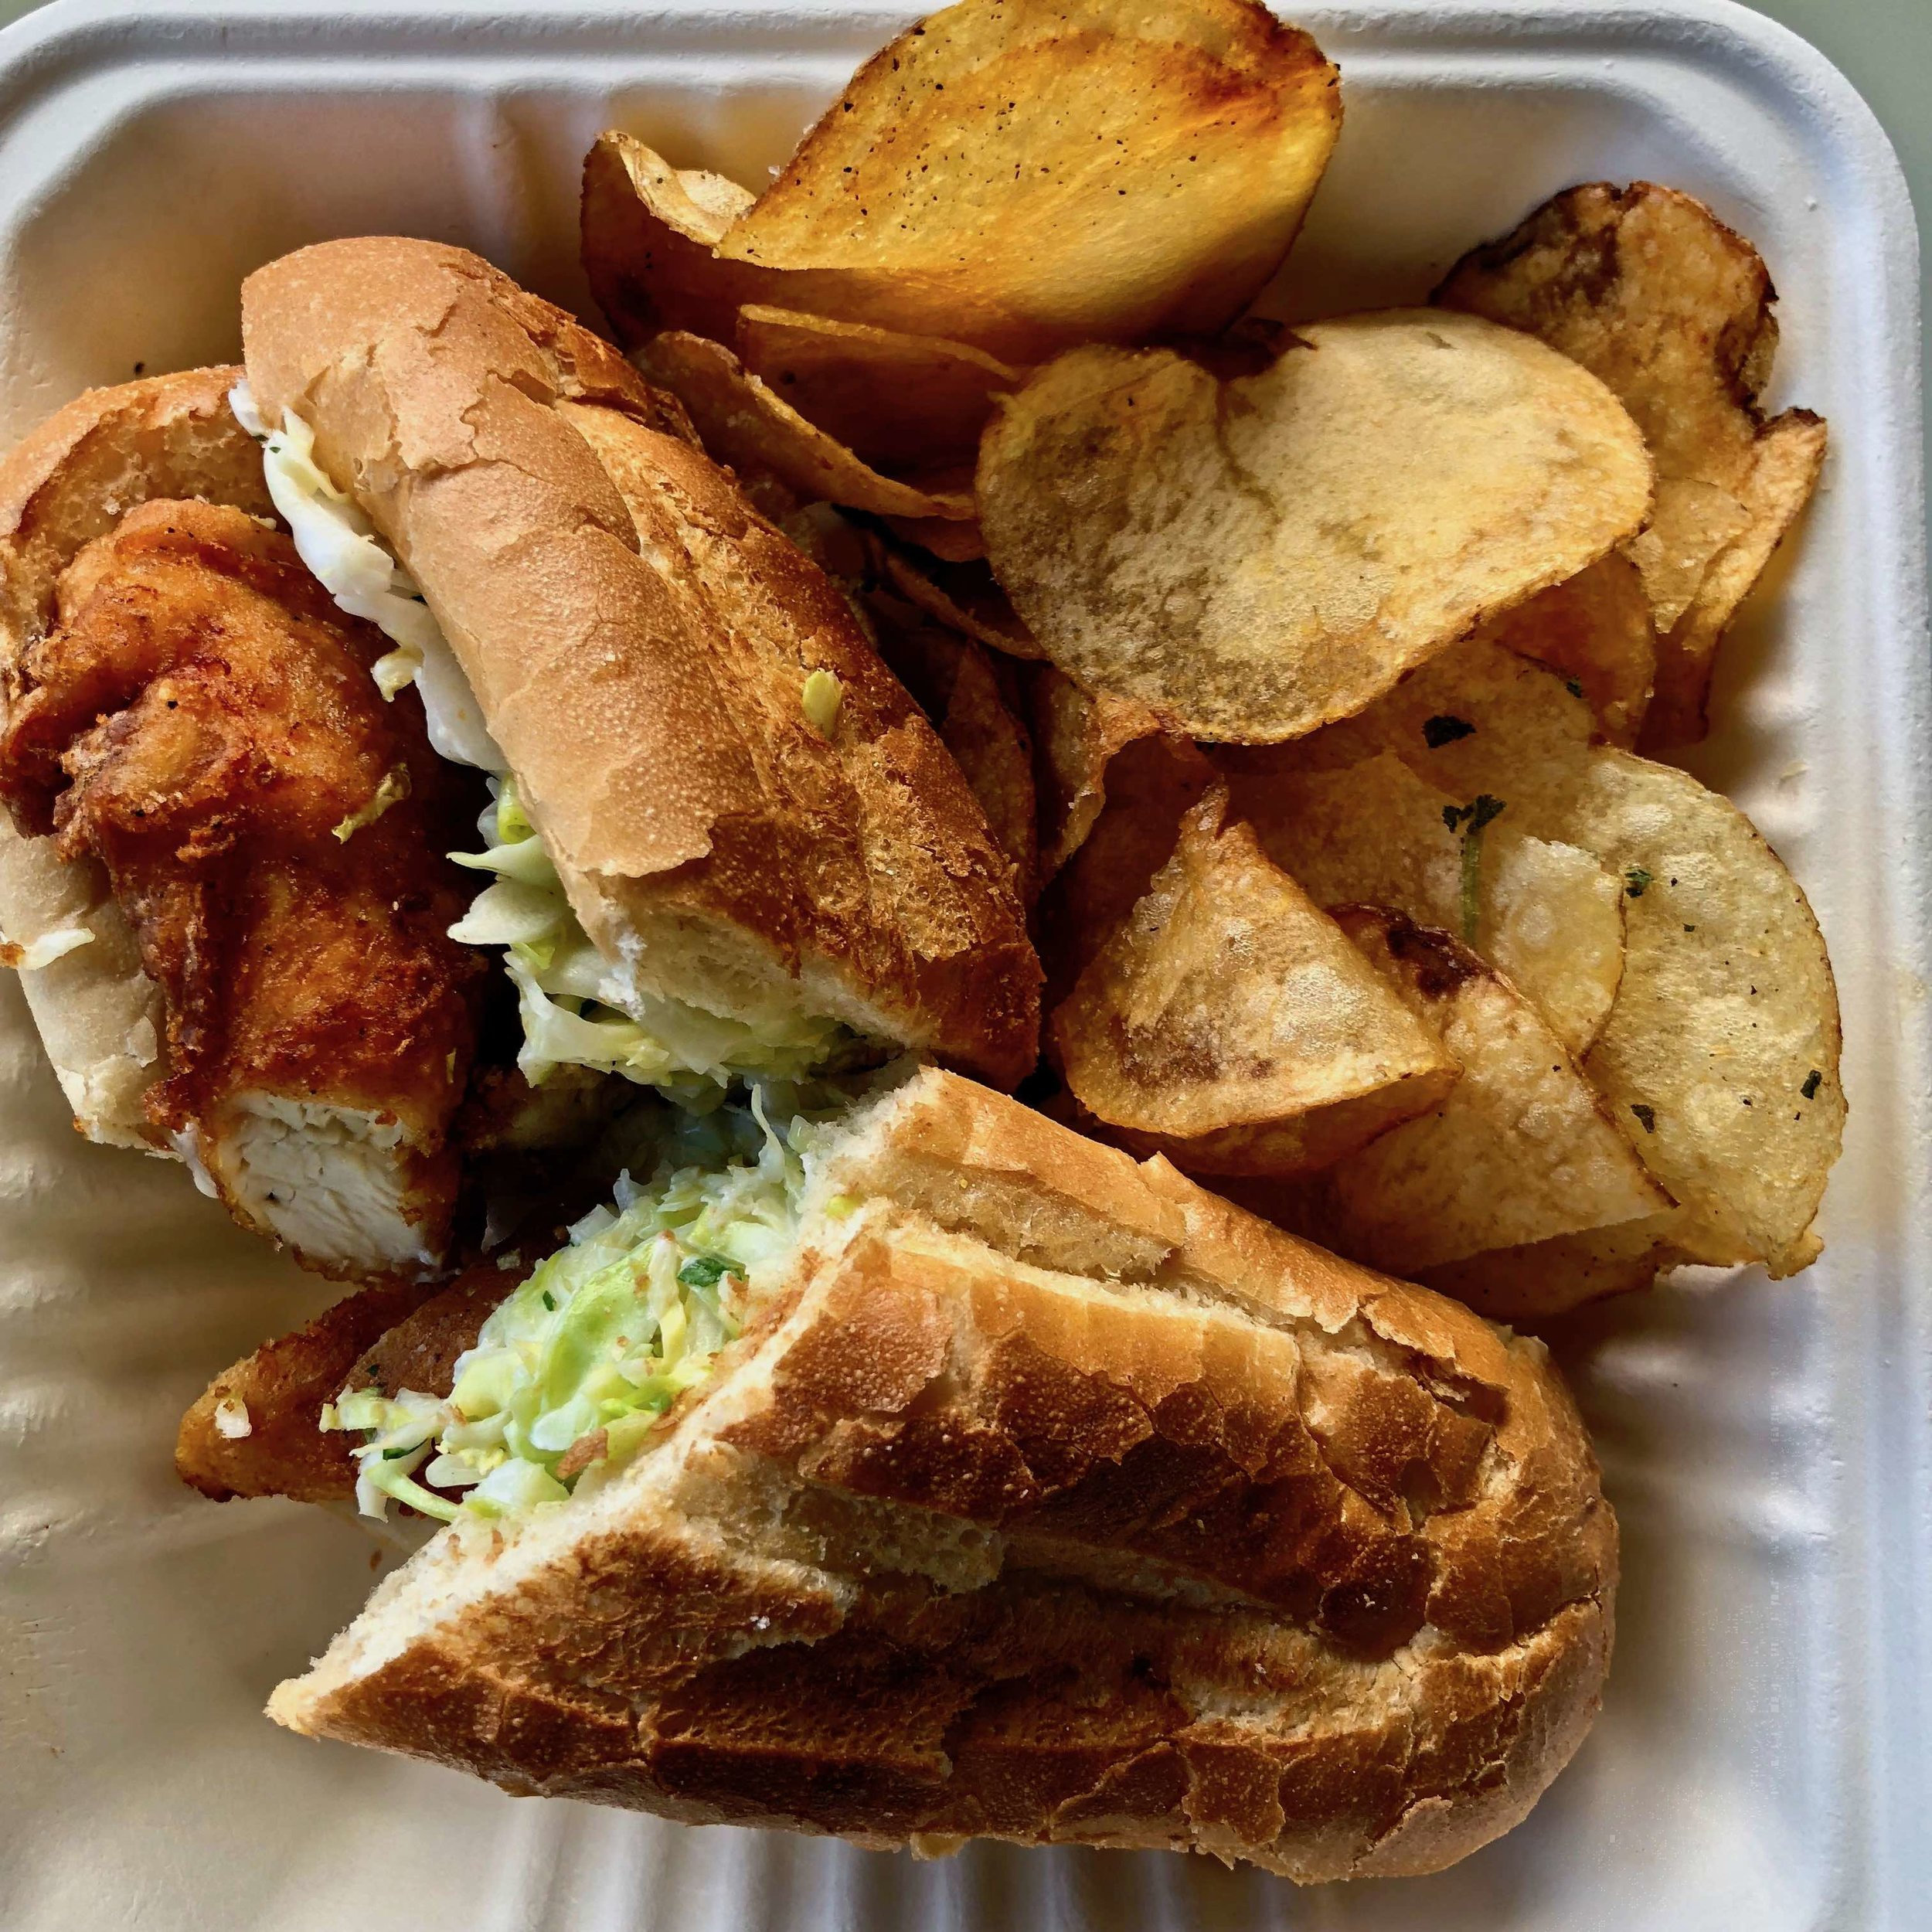 fried chicken sandwich and chips $10.75